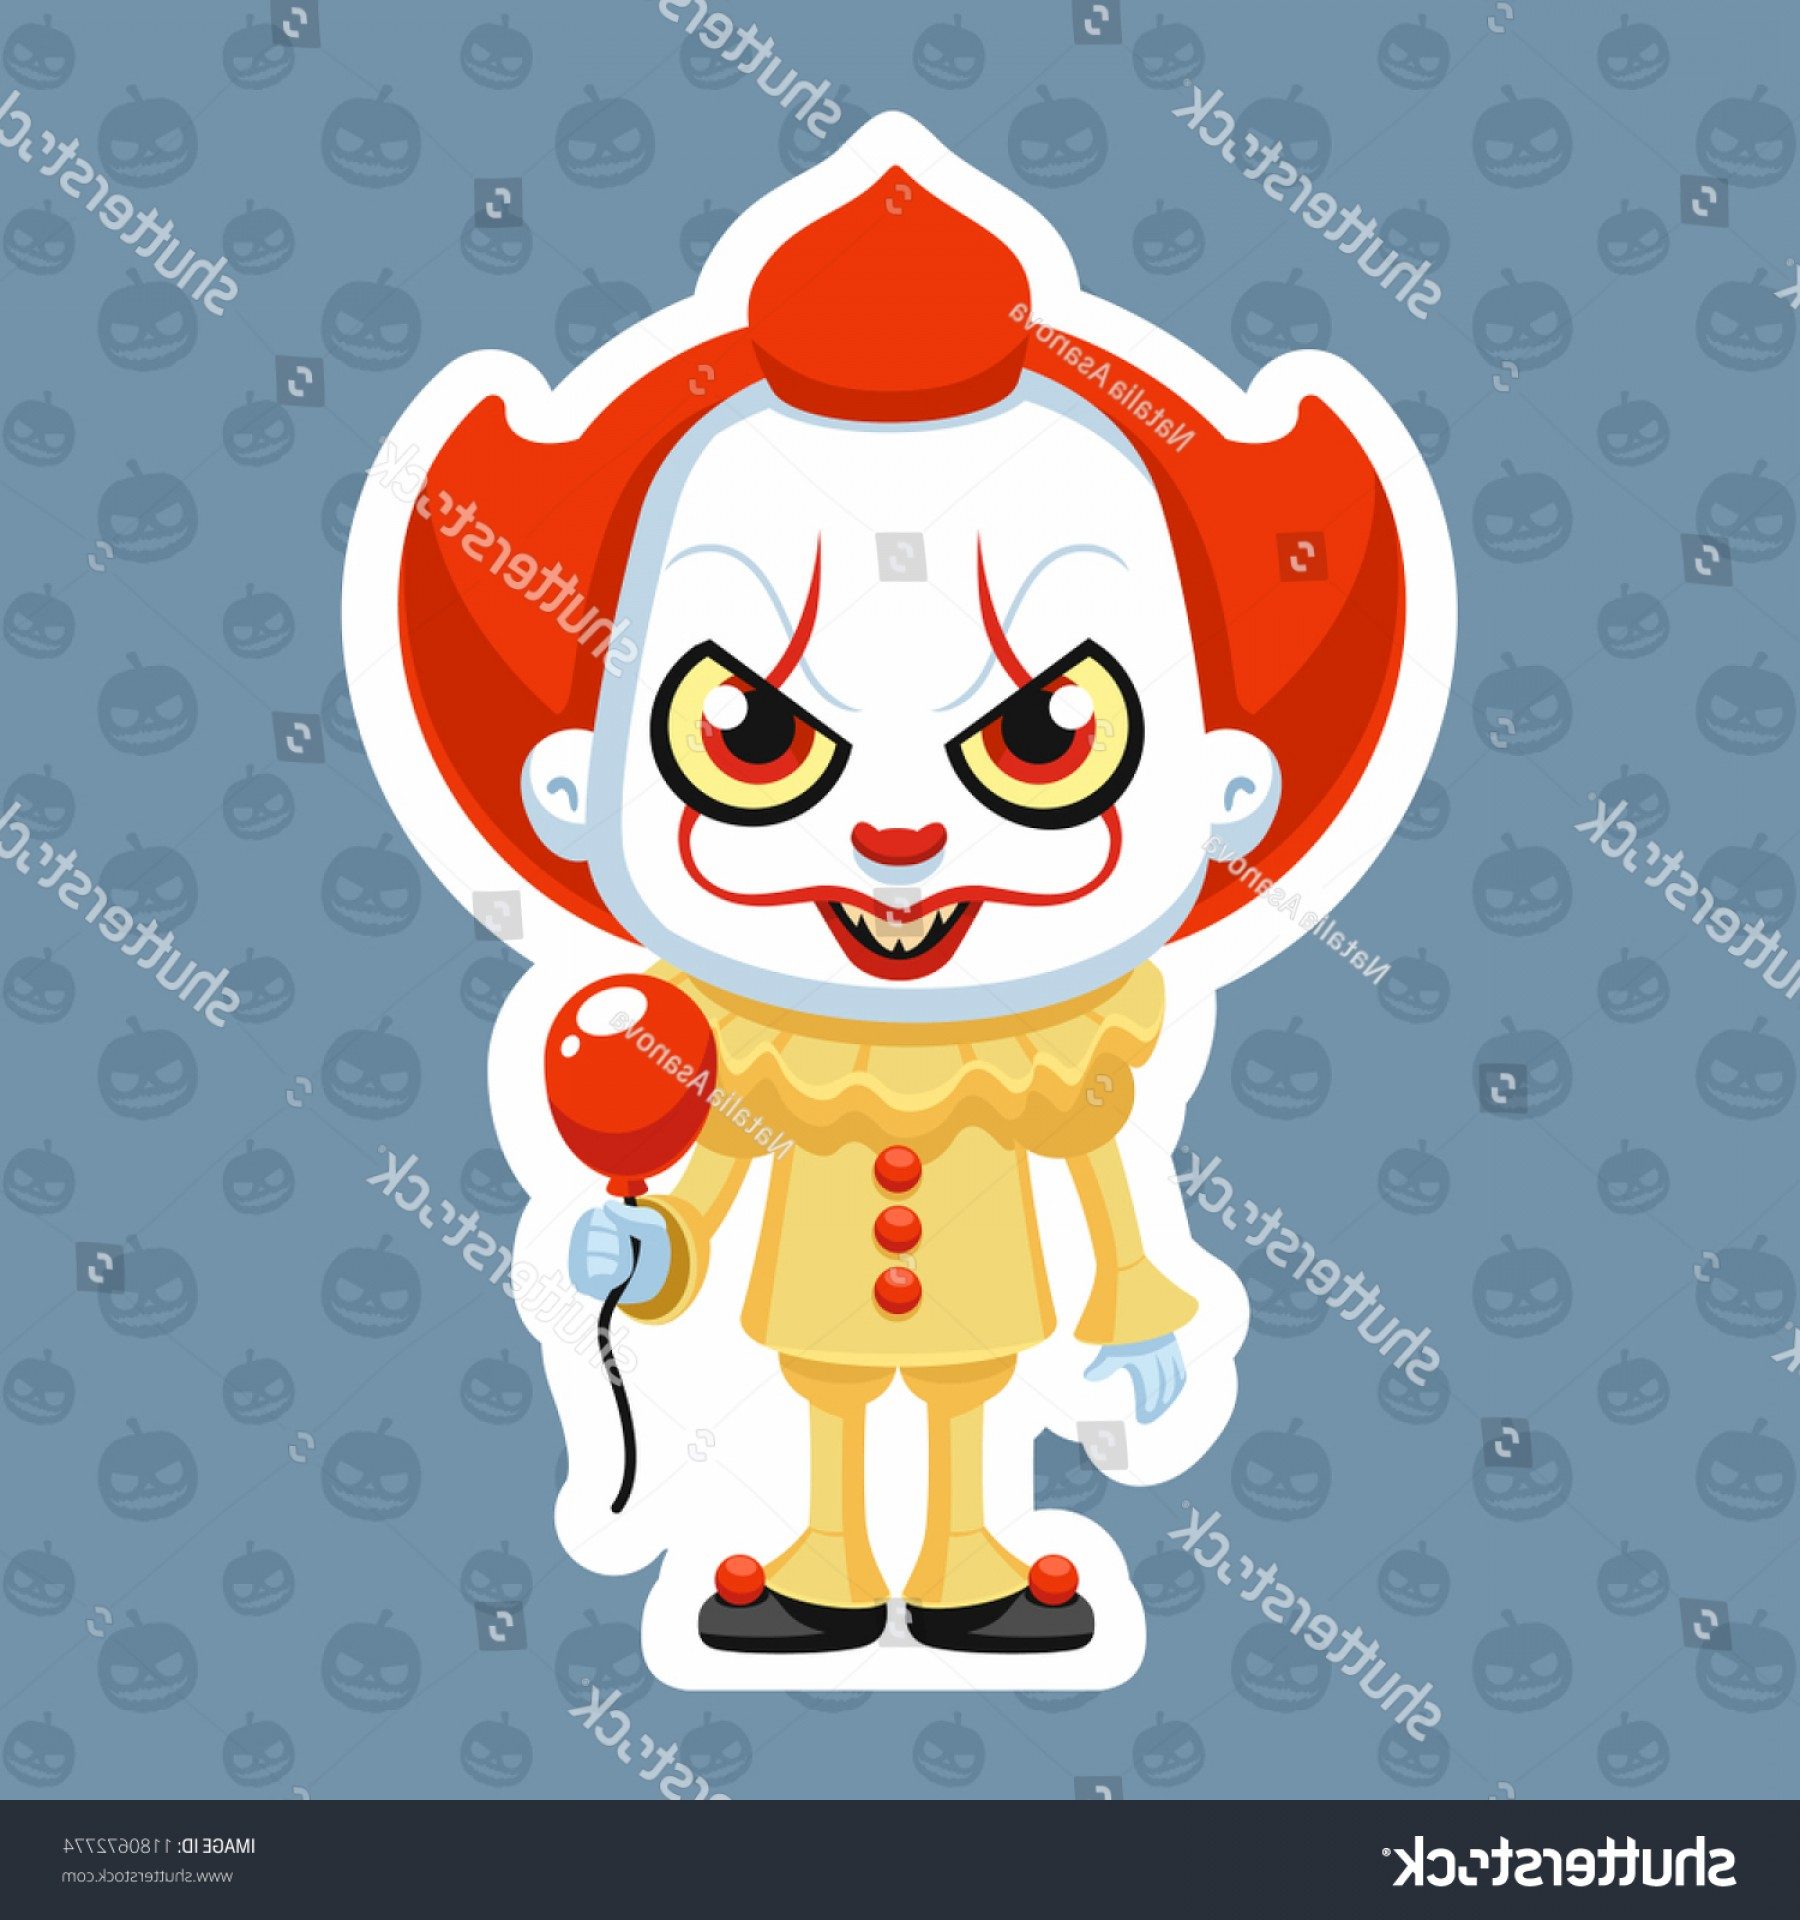 Pennywise Clown Vector: Pennywise Vector Illustration Clown Halloween Costume